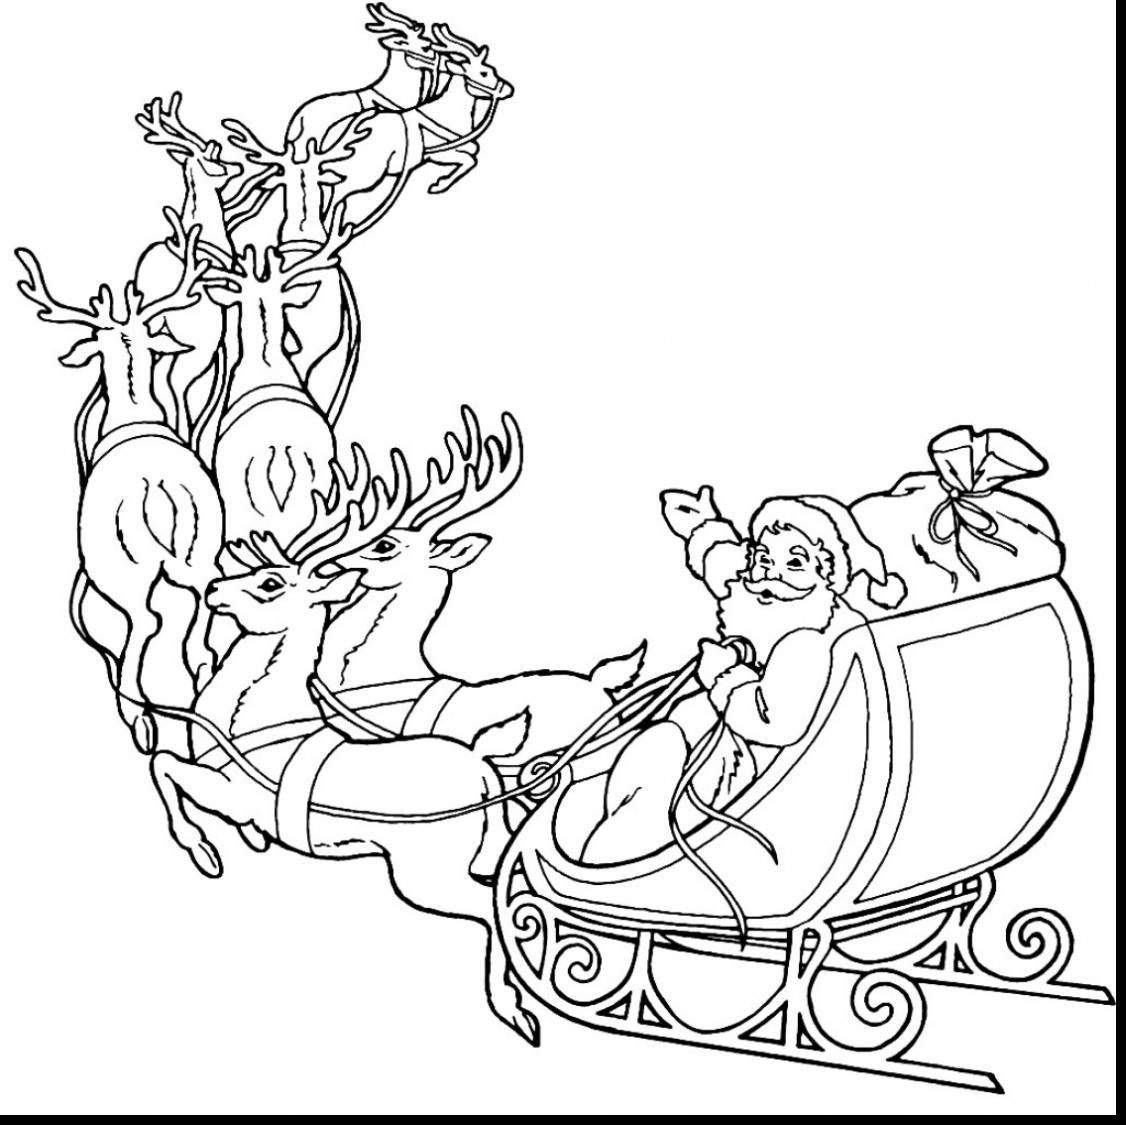 Unbelievable Santa Claus And Reindeer Coloring Pages With Reindeer